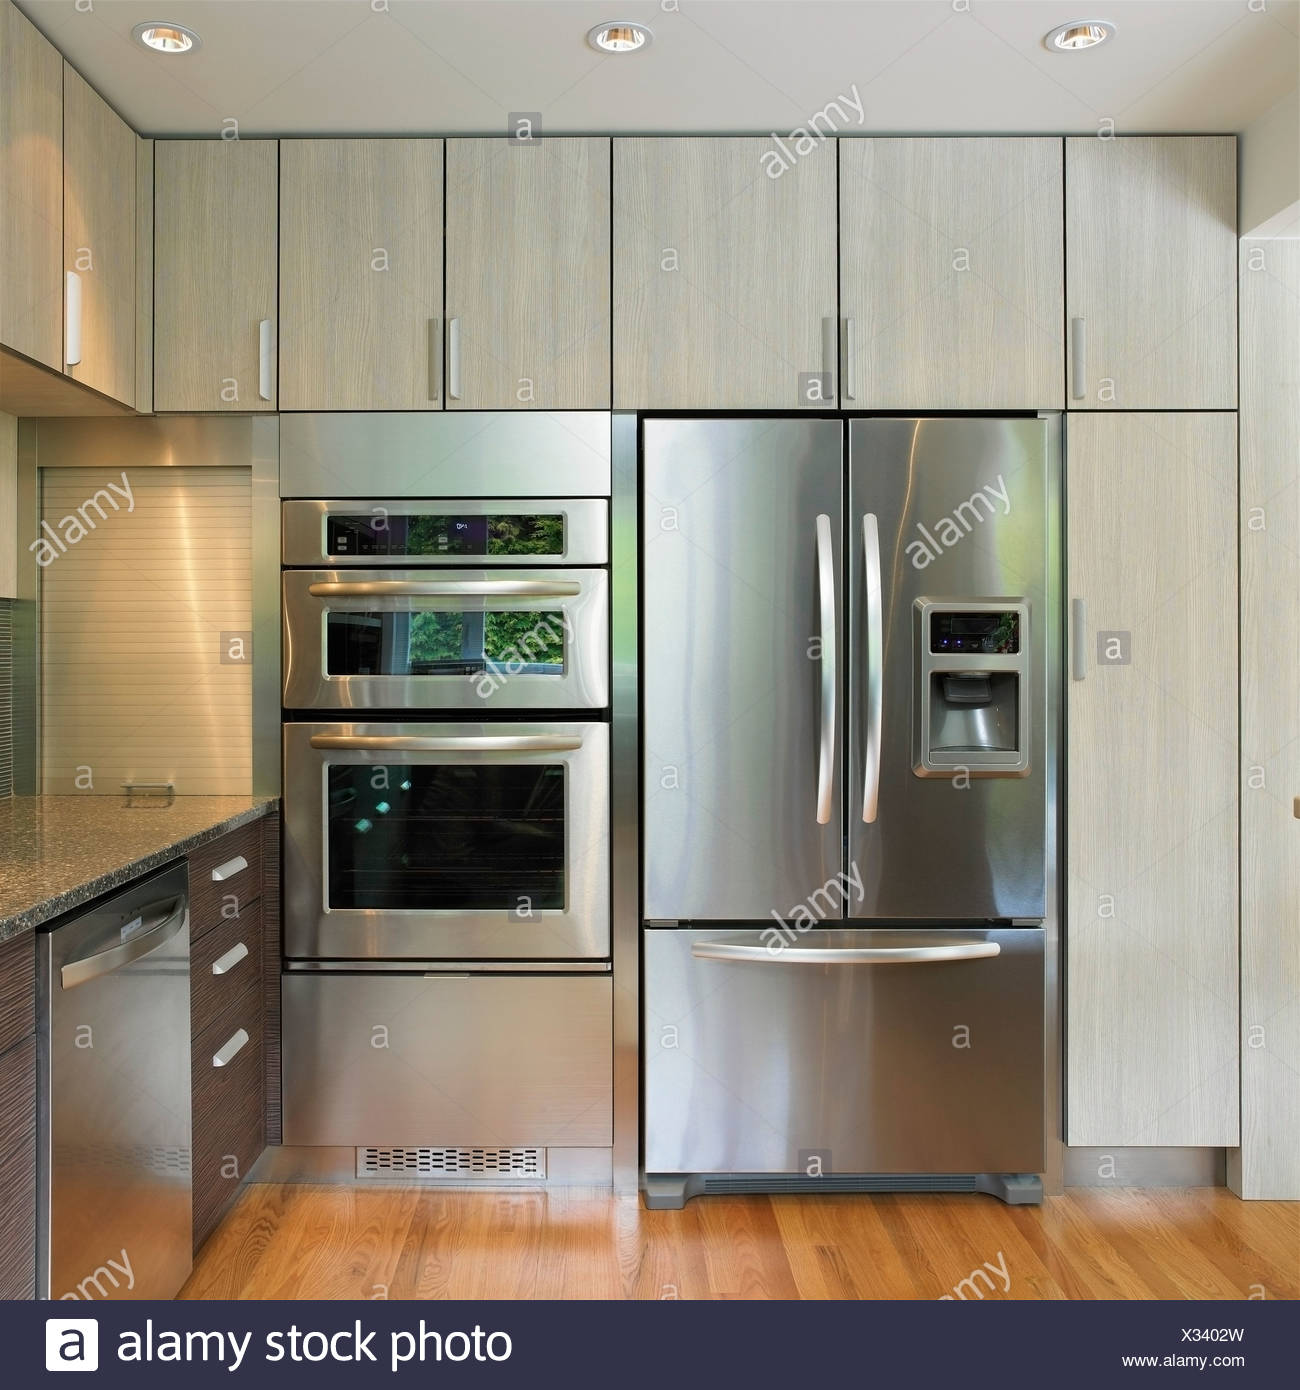 Fridges Canada Kitchen Wall Featuring Built In Fridge And Wall Oven Victoria